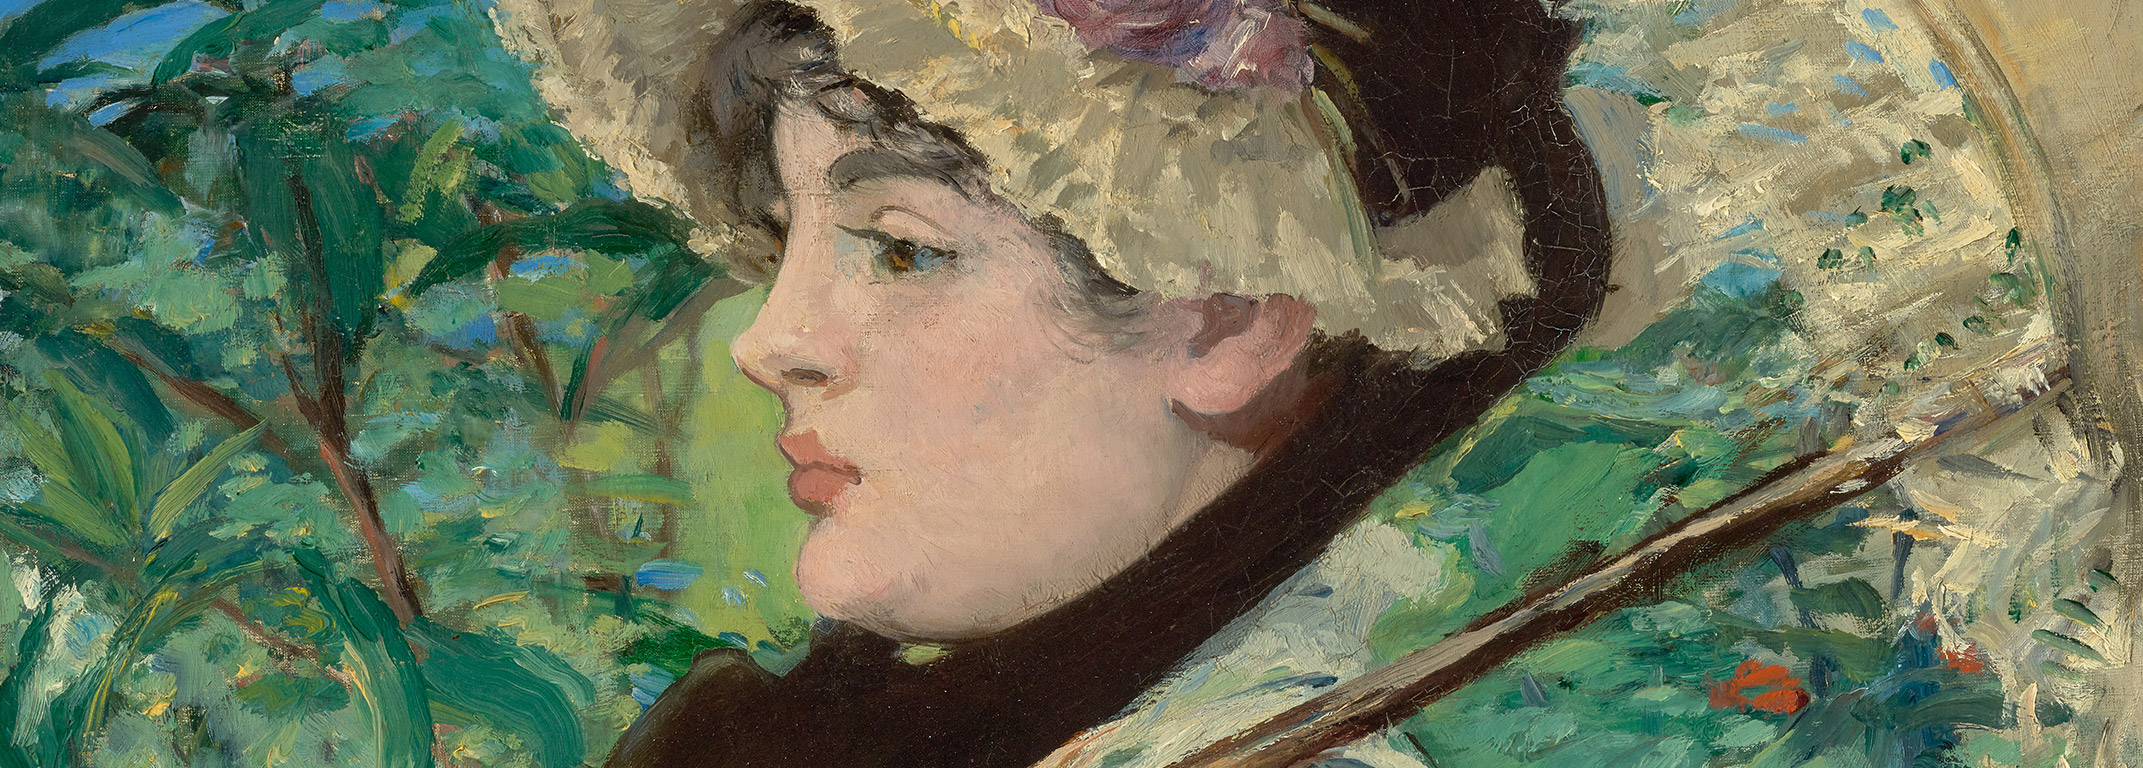 https://www.getty.edu/art/exhibitions/late_manet/images/banner_x2048.jpg